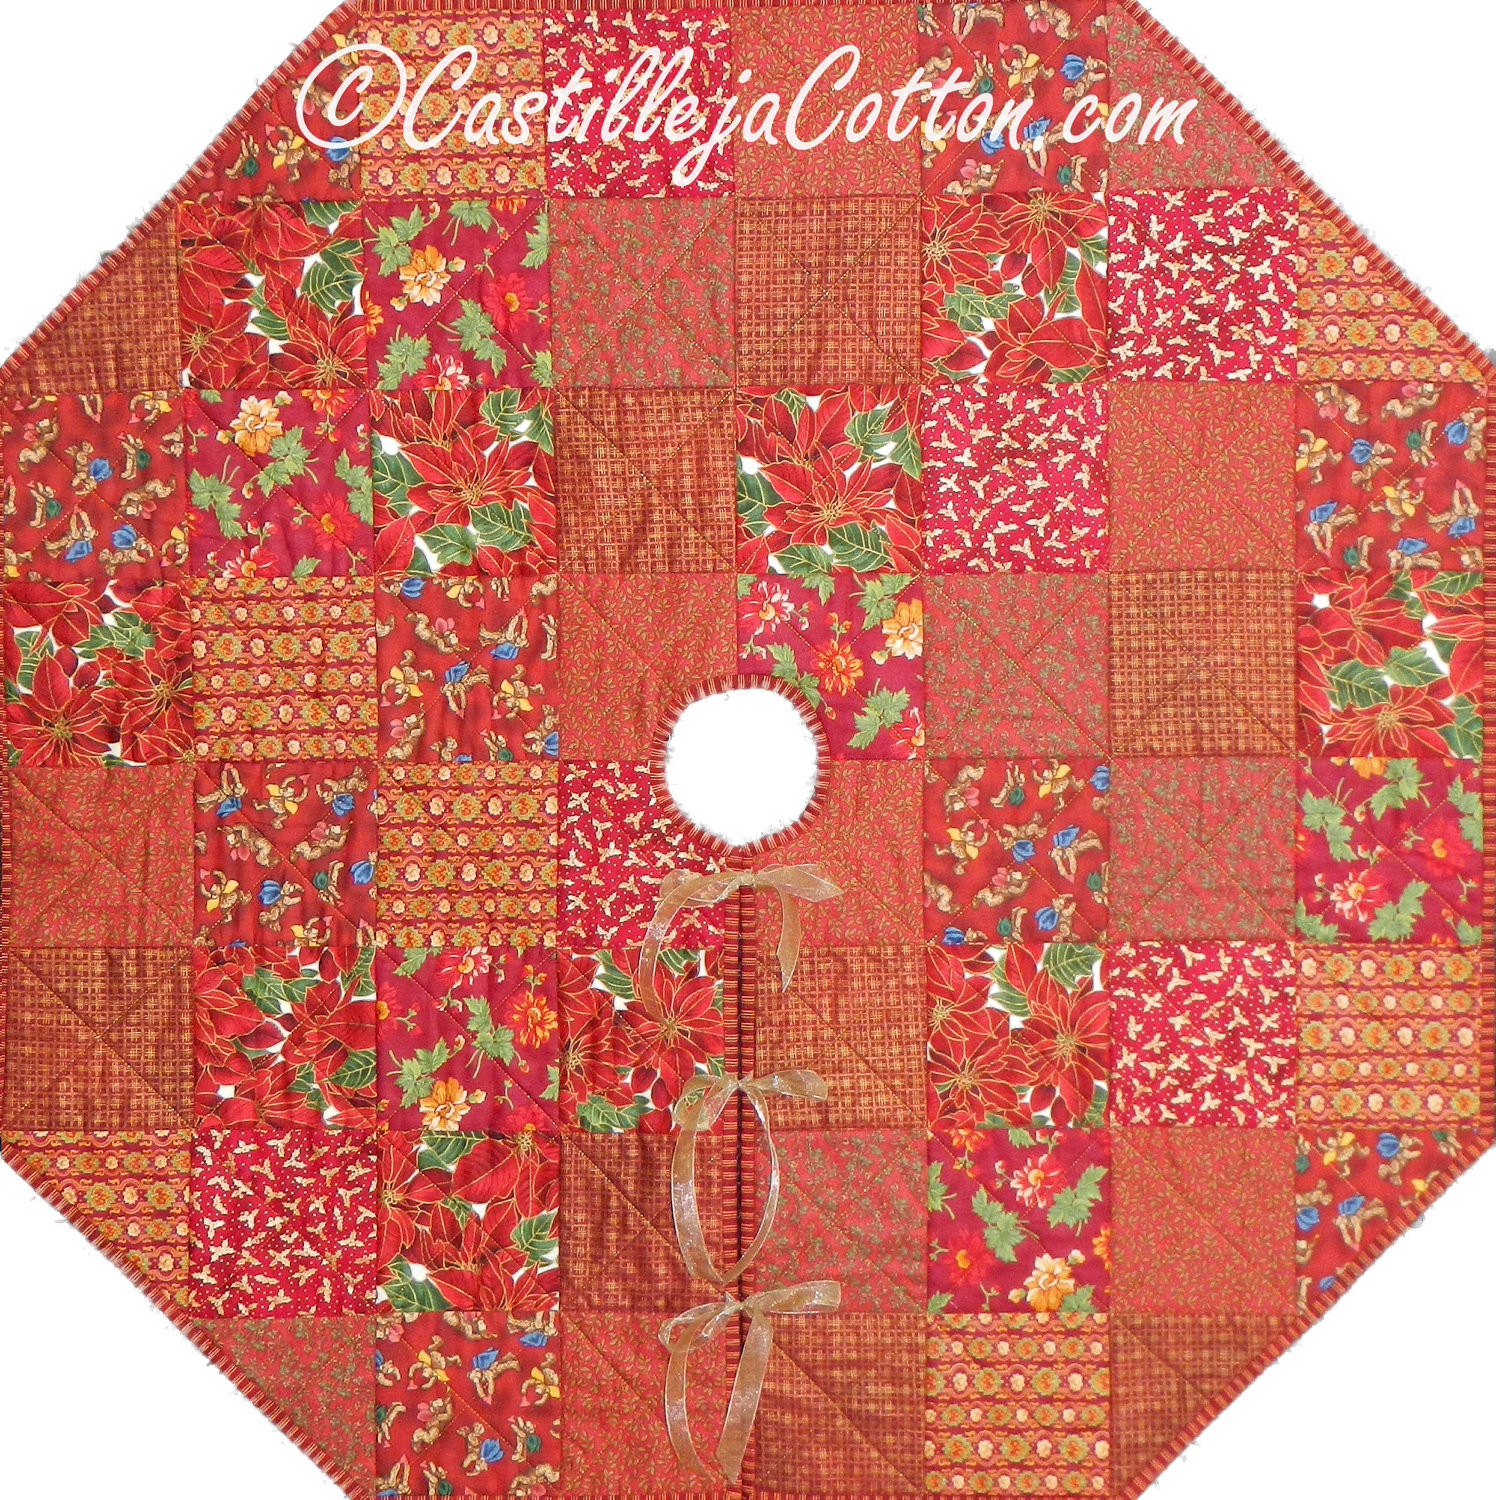 Tree Skirt Pattern Awesome Christmas Tree Skirt Quilt Epattern 4639 1 Tree Skirt Of Tree Skirt Pattern Elegant Christmas Goose Tree Skirt & Card Holder